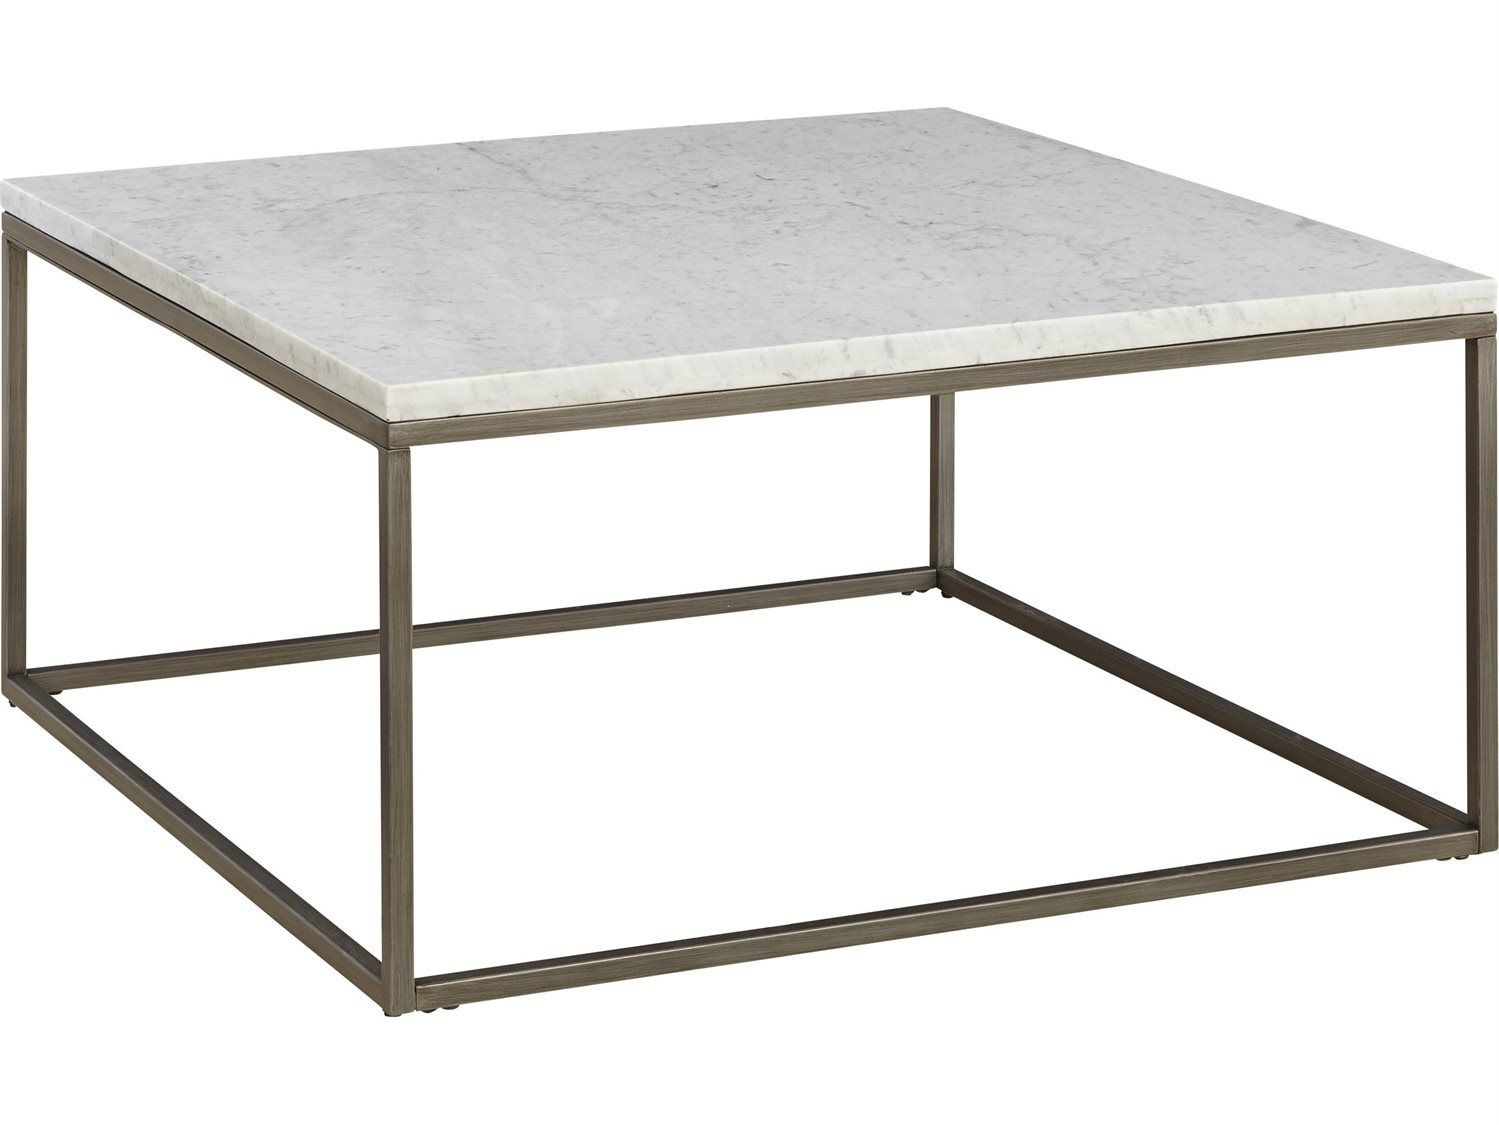 Casana Alana White Marble Natural Steel 36 Square Coffee Table Coffee Table Furniture Coffee Table Metal Frame Side Coffee Table